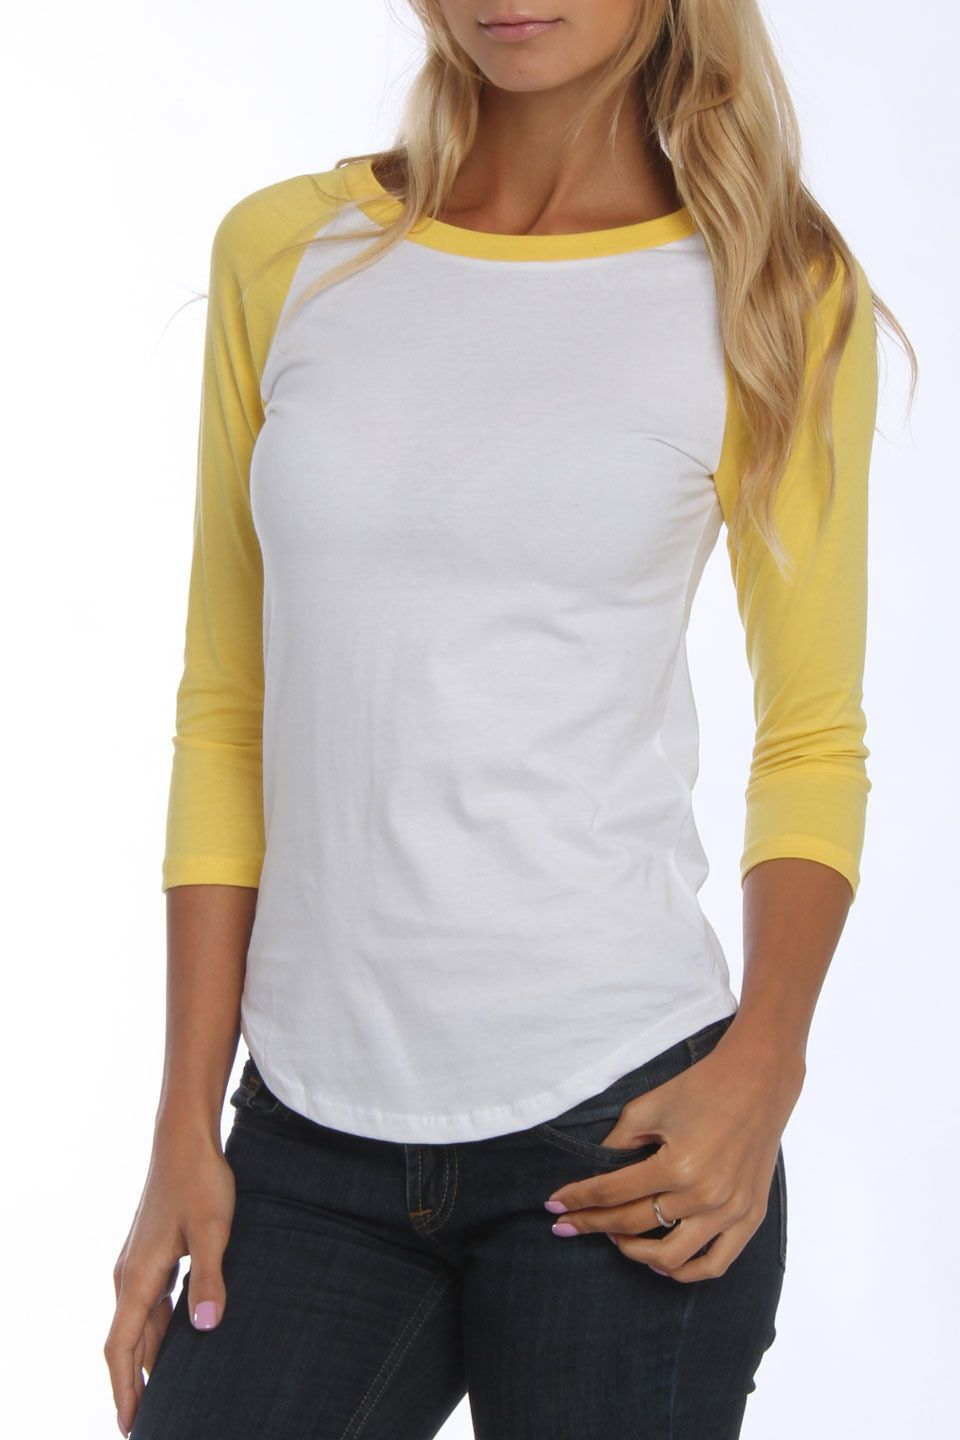 208d90c4ec38 US Blanks Raglan Baseball Tee in White and Bright Yellow - Beyond the Rack